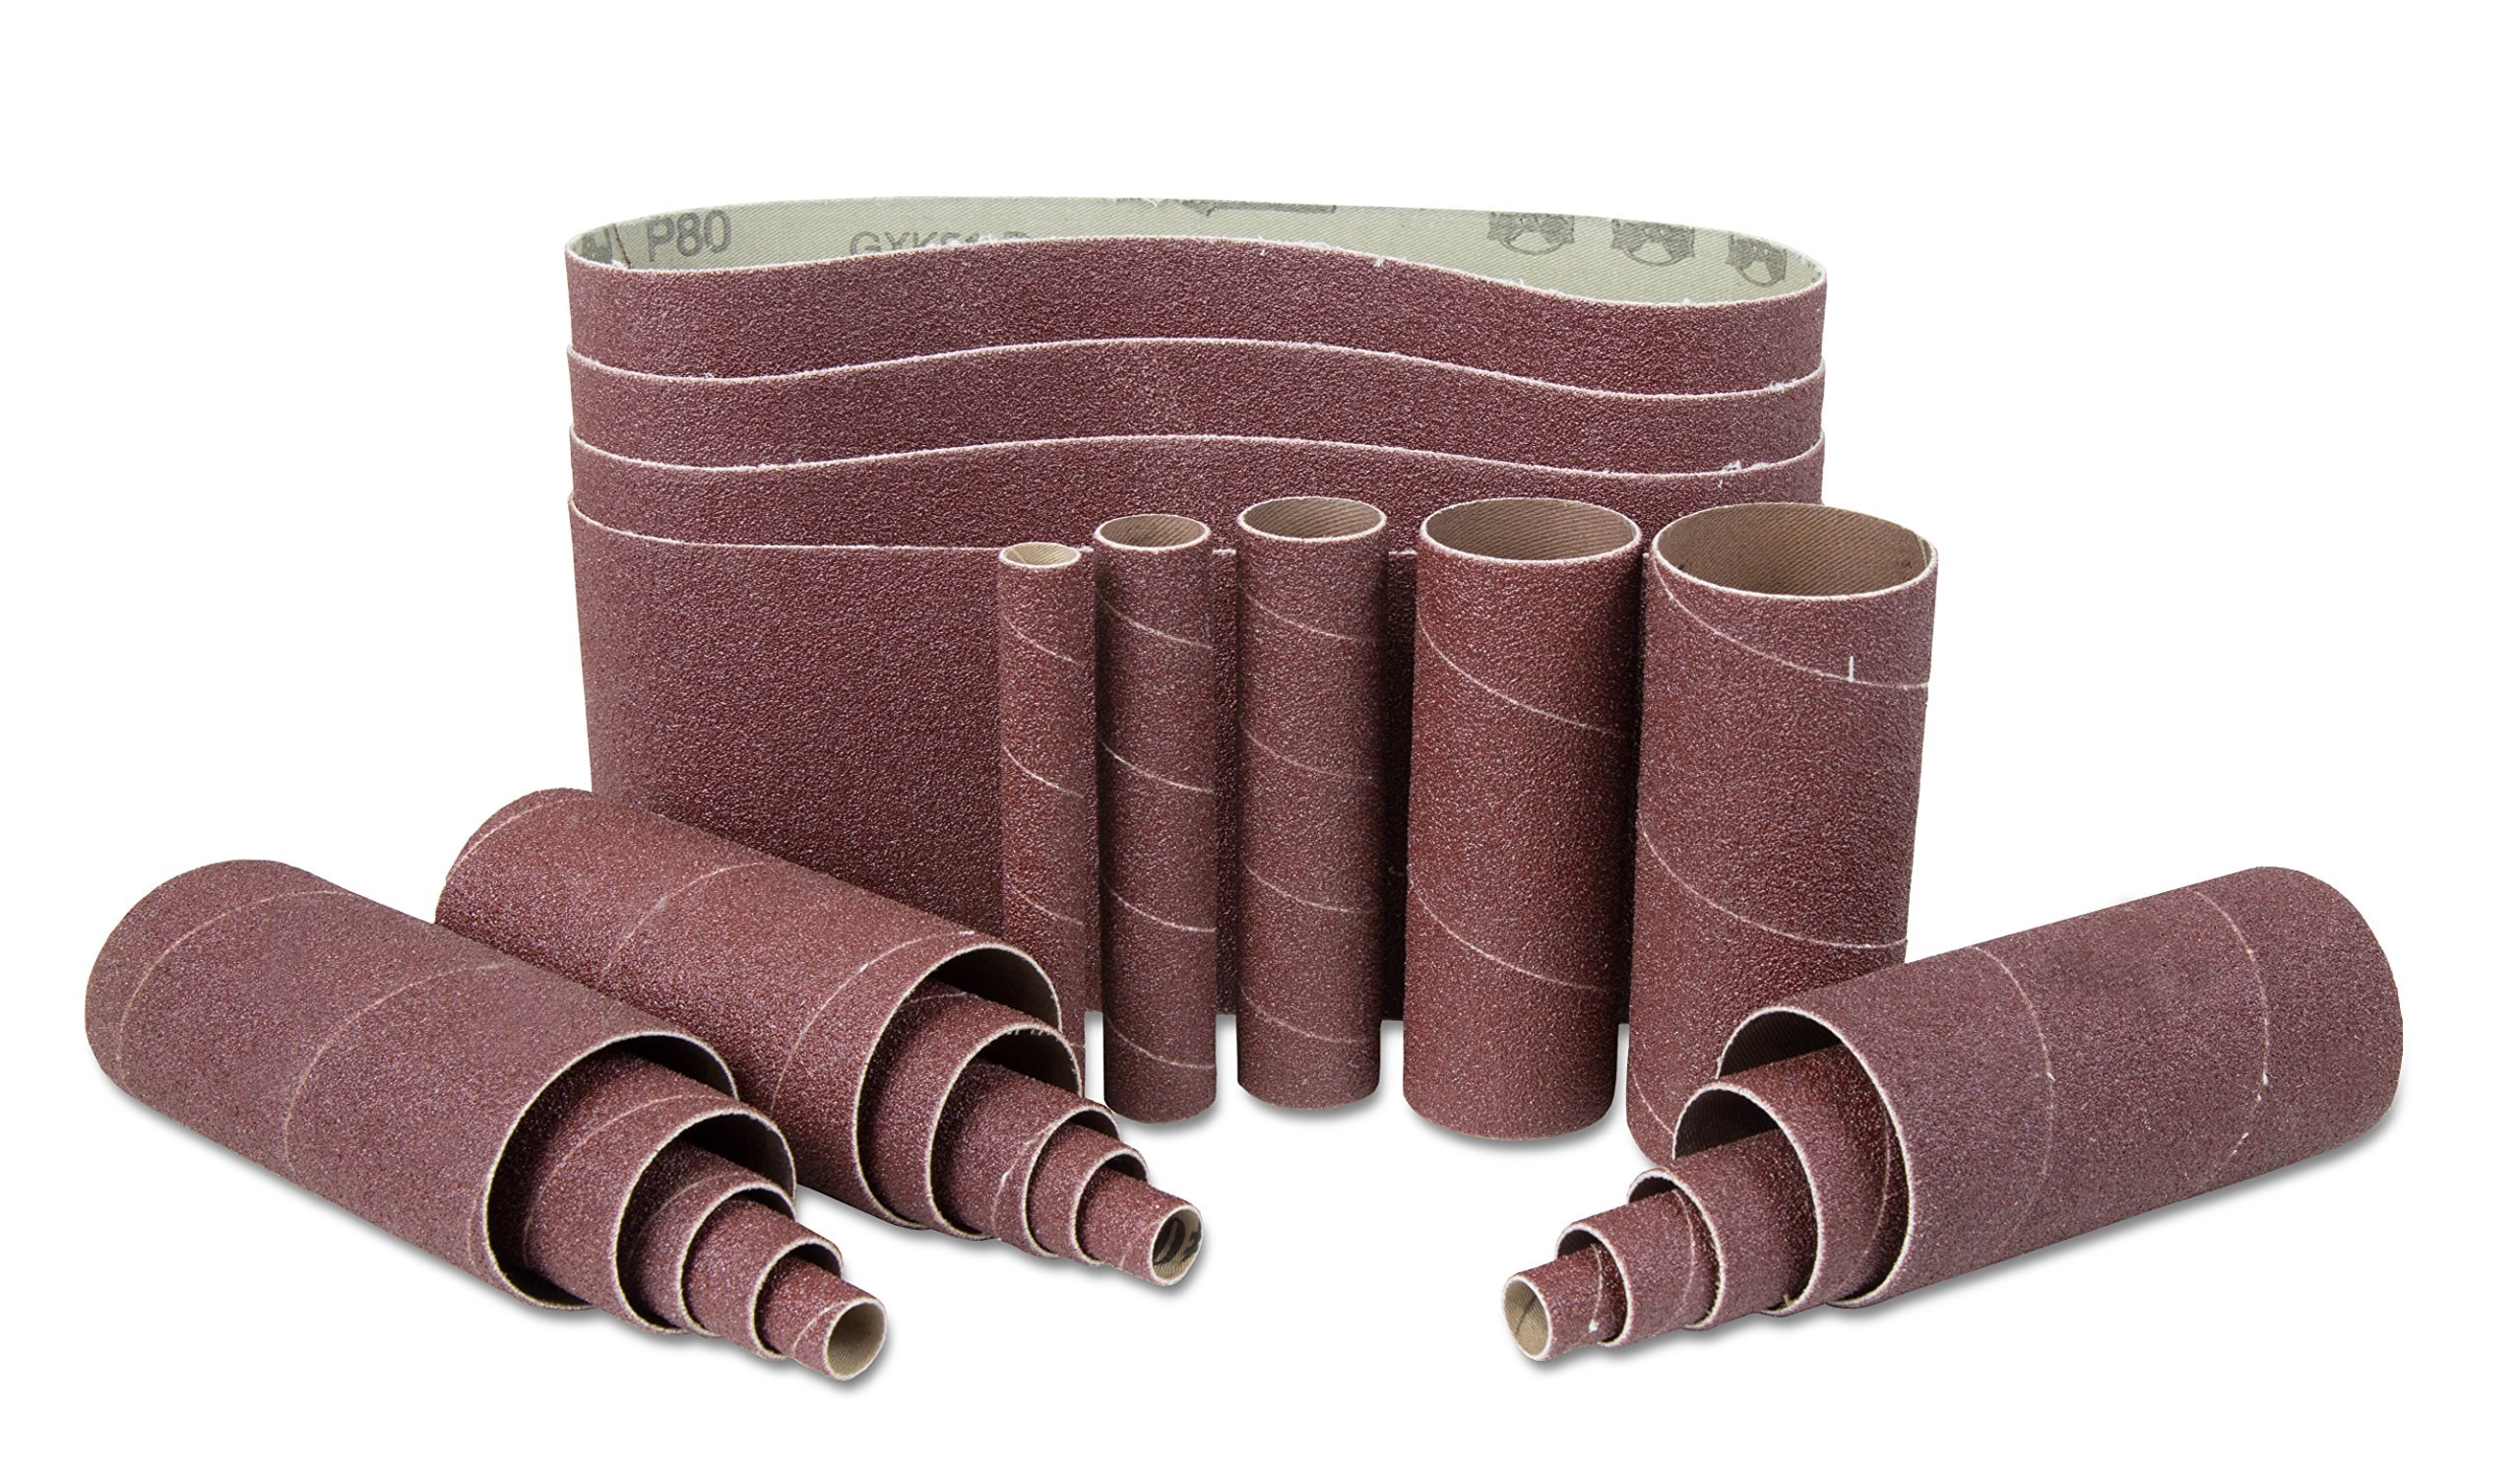 WEN 6523SP120 120-Grit Combination Belt & Sleeve Sandpaper Set, 24 Pack